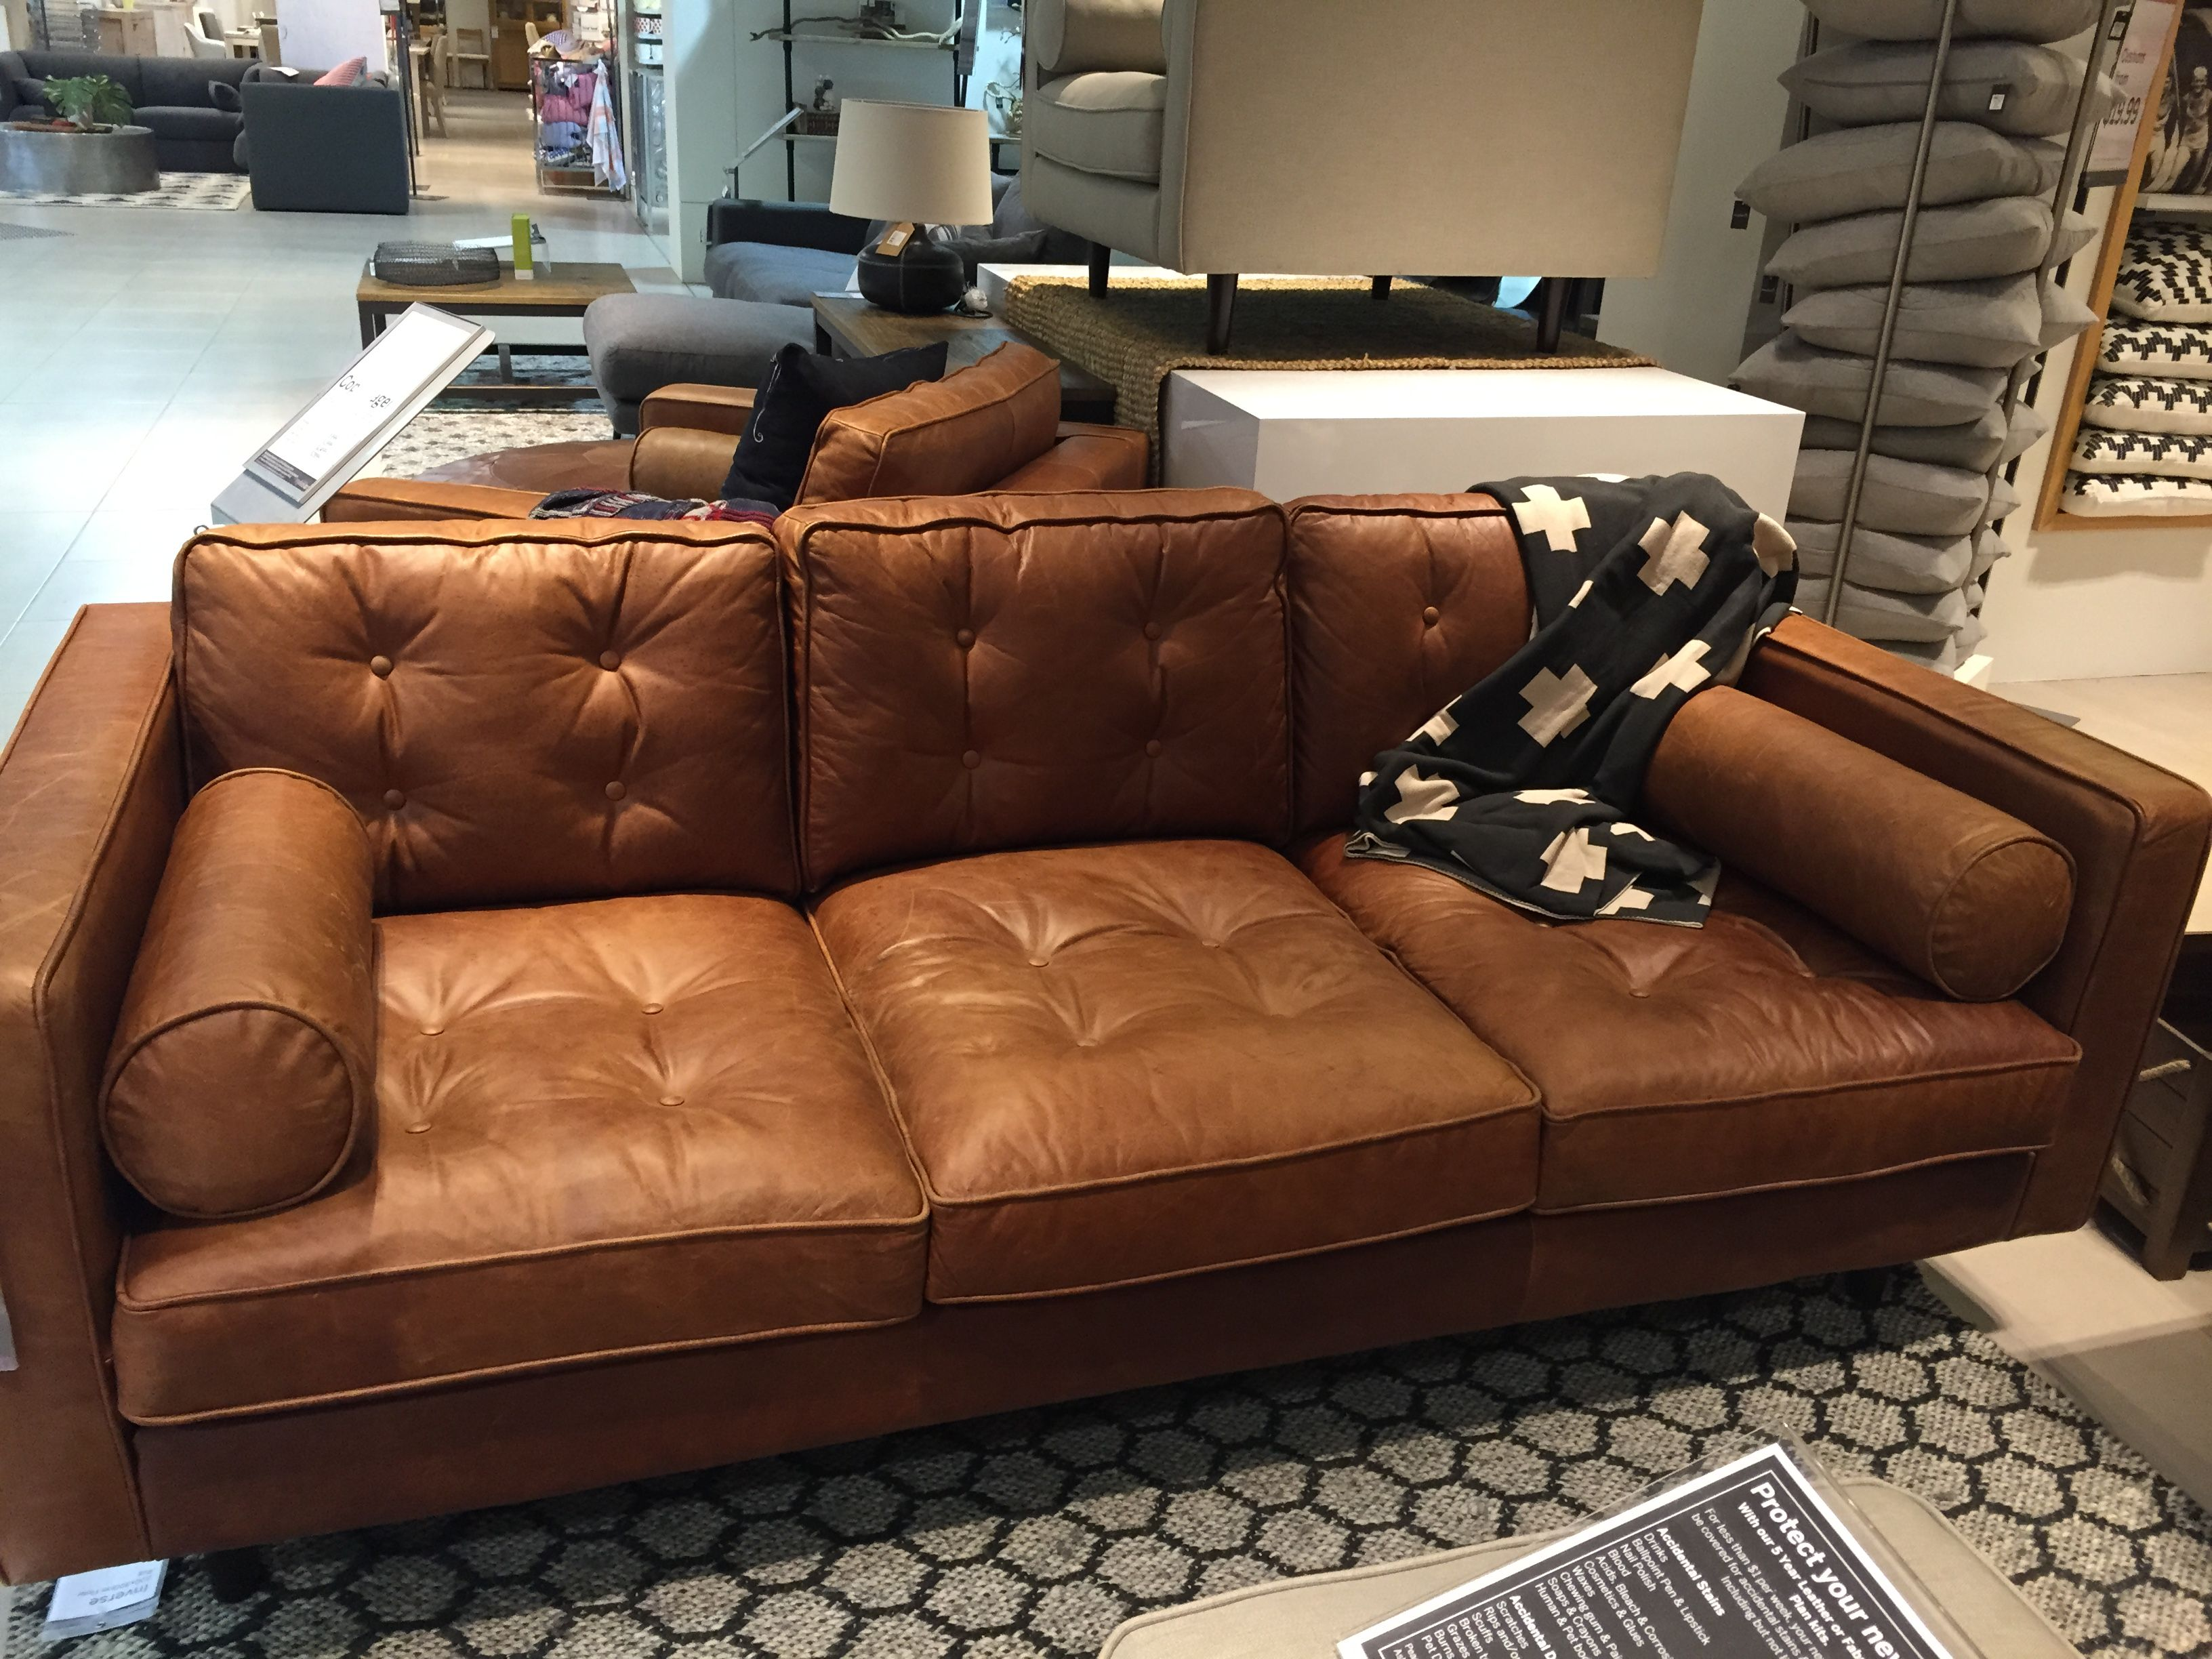 king furniture sofa gumtree melbourne latest corner design 2017 freedom leather stkittsvilla